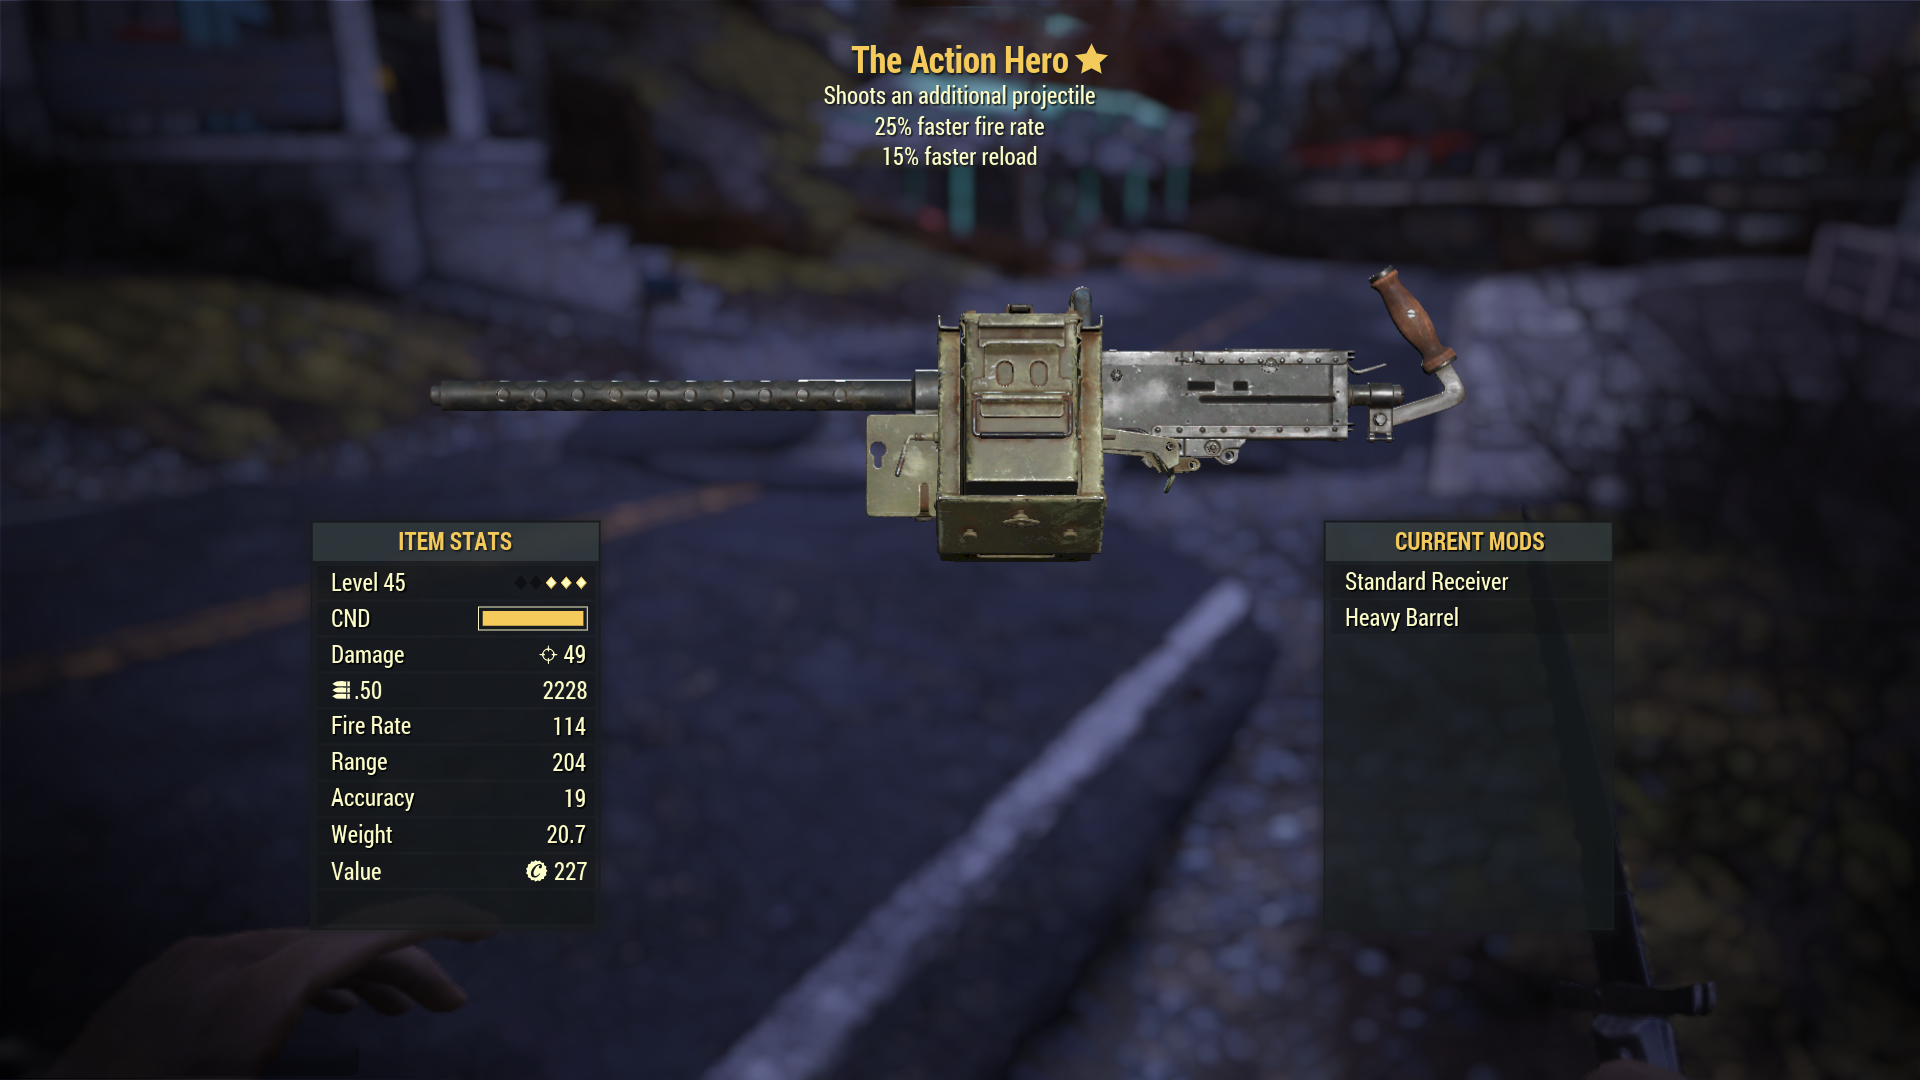 Survival_50CalMachineGun_TheActionHero